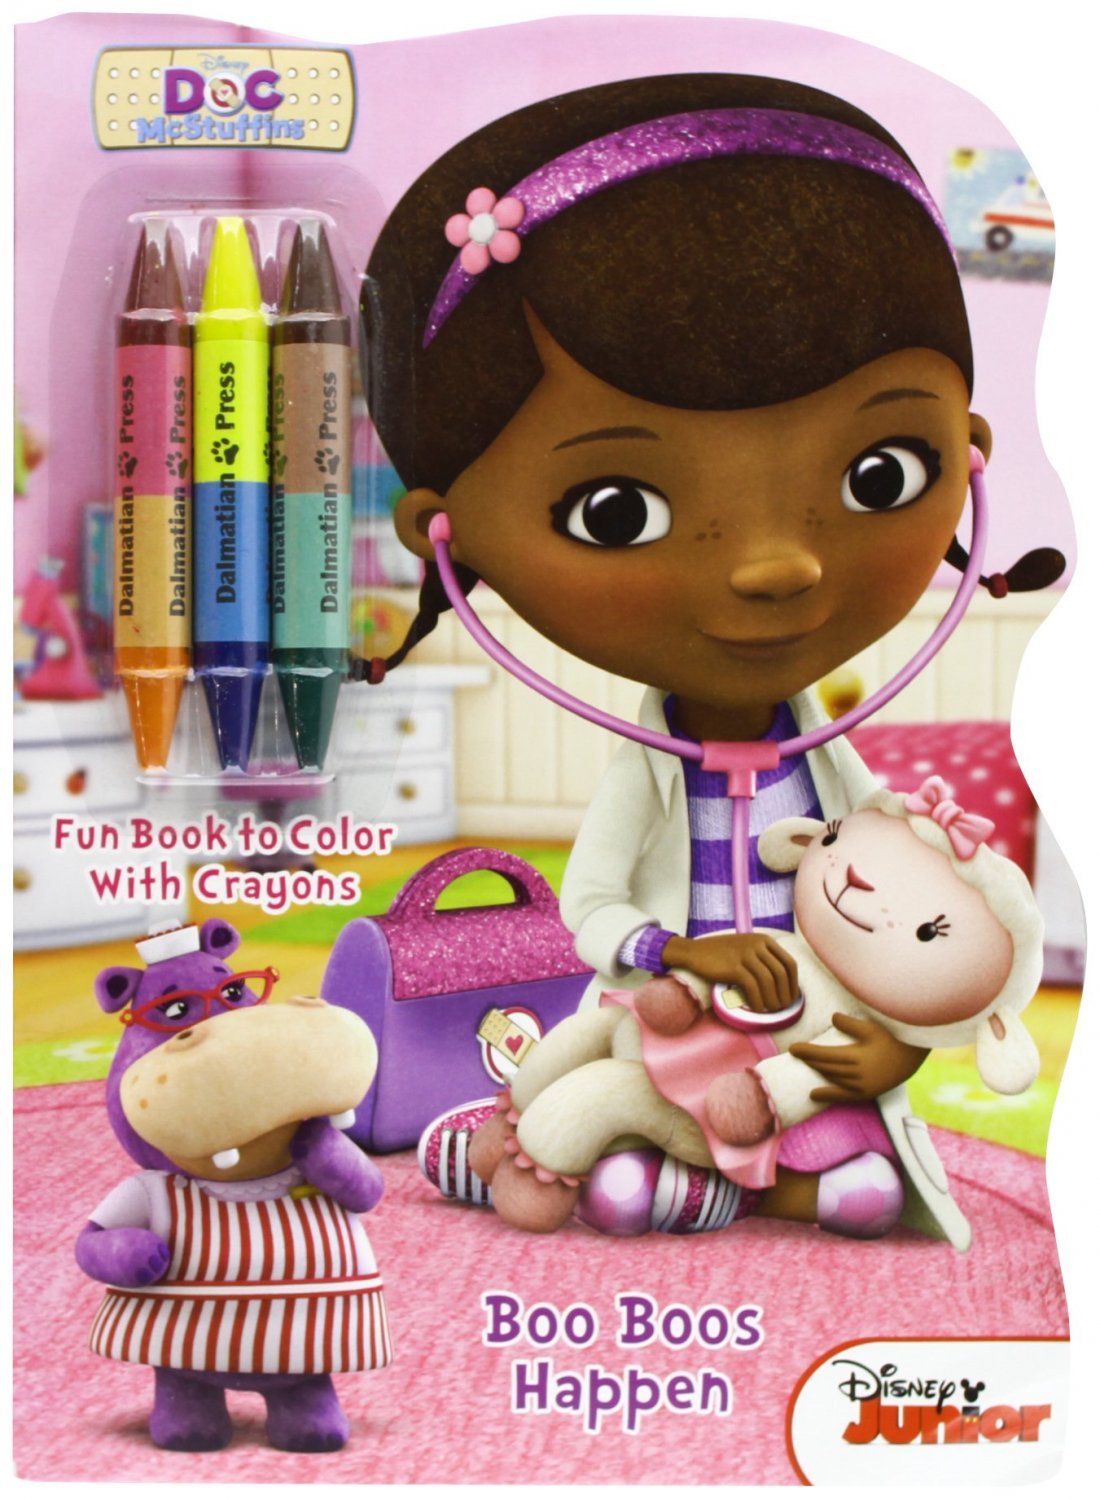 Doc McStuffins Boo Boos Happen: Shaped Book to Color with Crayons